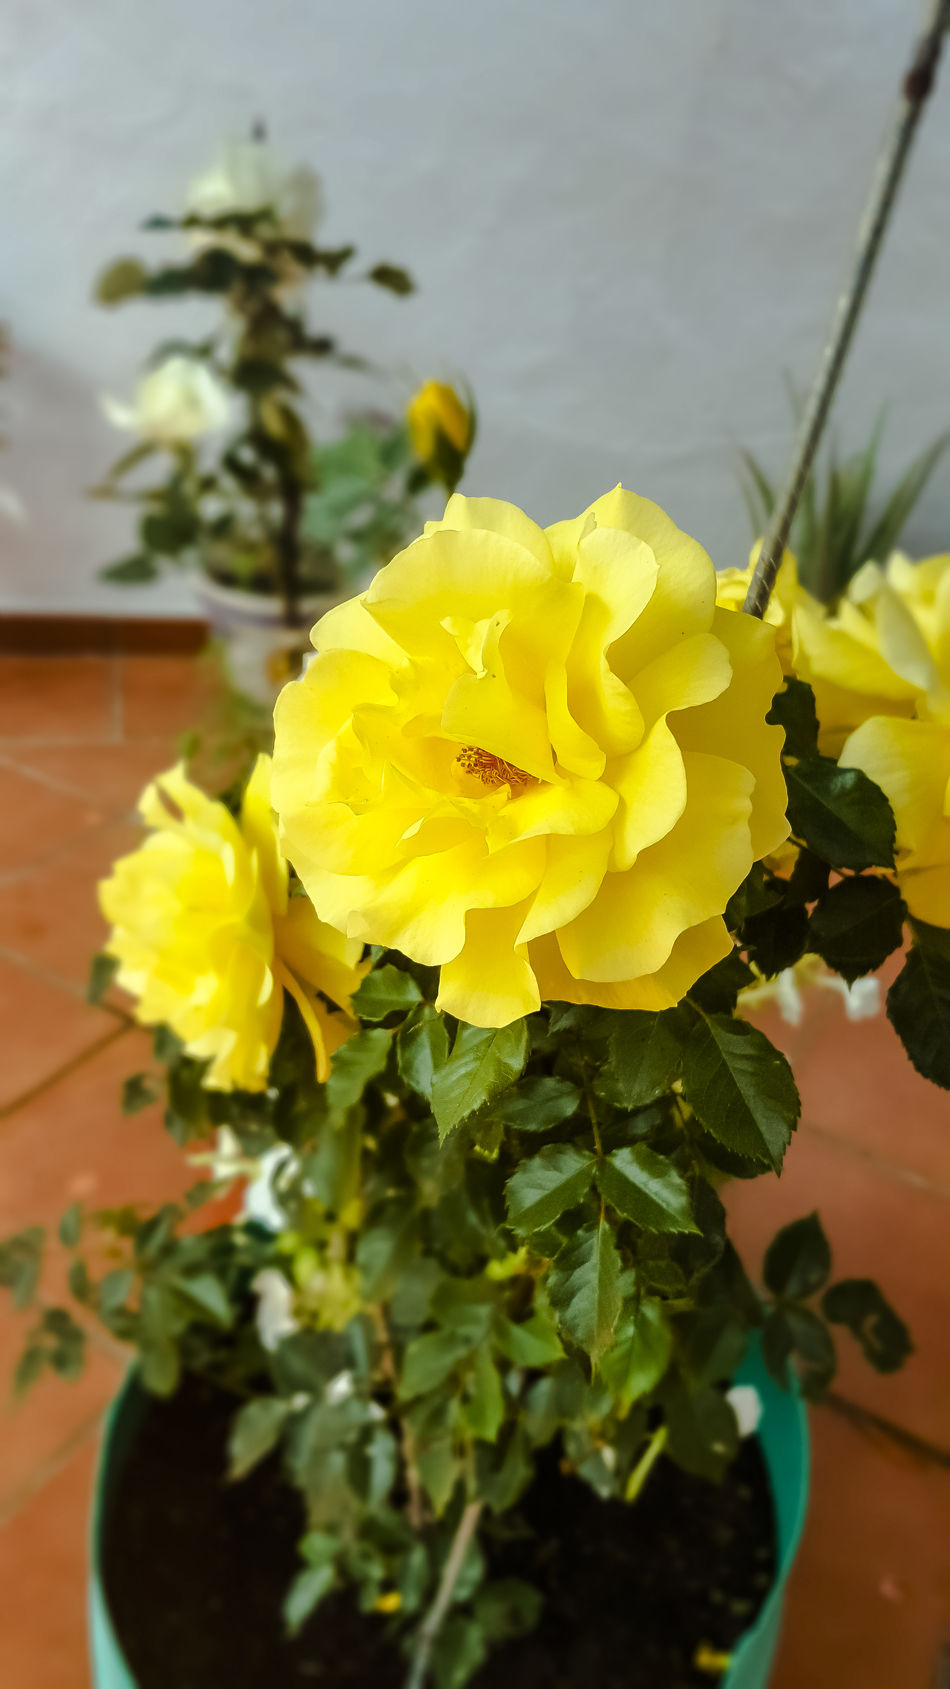 Flowers from my garden The Purist (no Edit, No Filter) Rose - Flower Yellow Rose Flower Plant Petal Flower Head Nature Beauty In Nature Growth Fragility Freshness Close-up No People Day Exceptional Photography The Secret Spaces EyeEm Diversity Art Is Everywhere EyeEmNewHere EyeEm Gallery Sevilla Spain